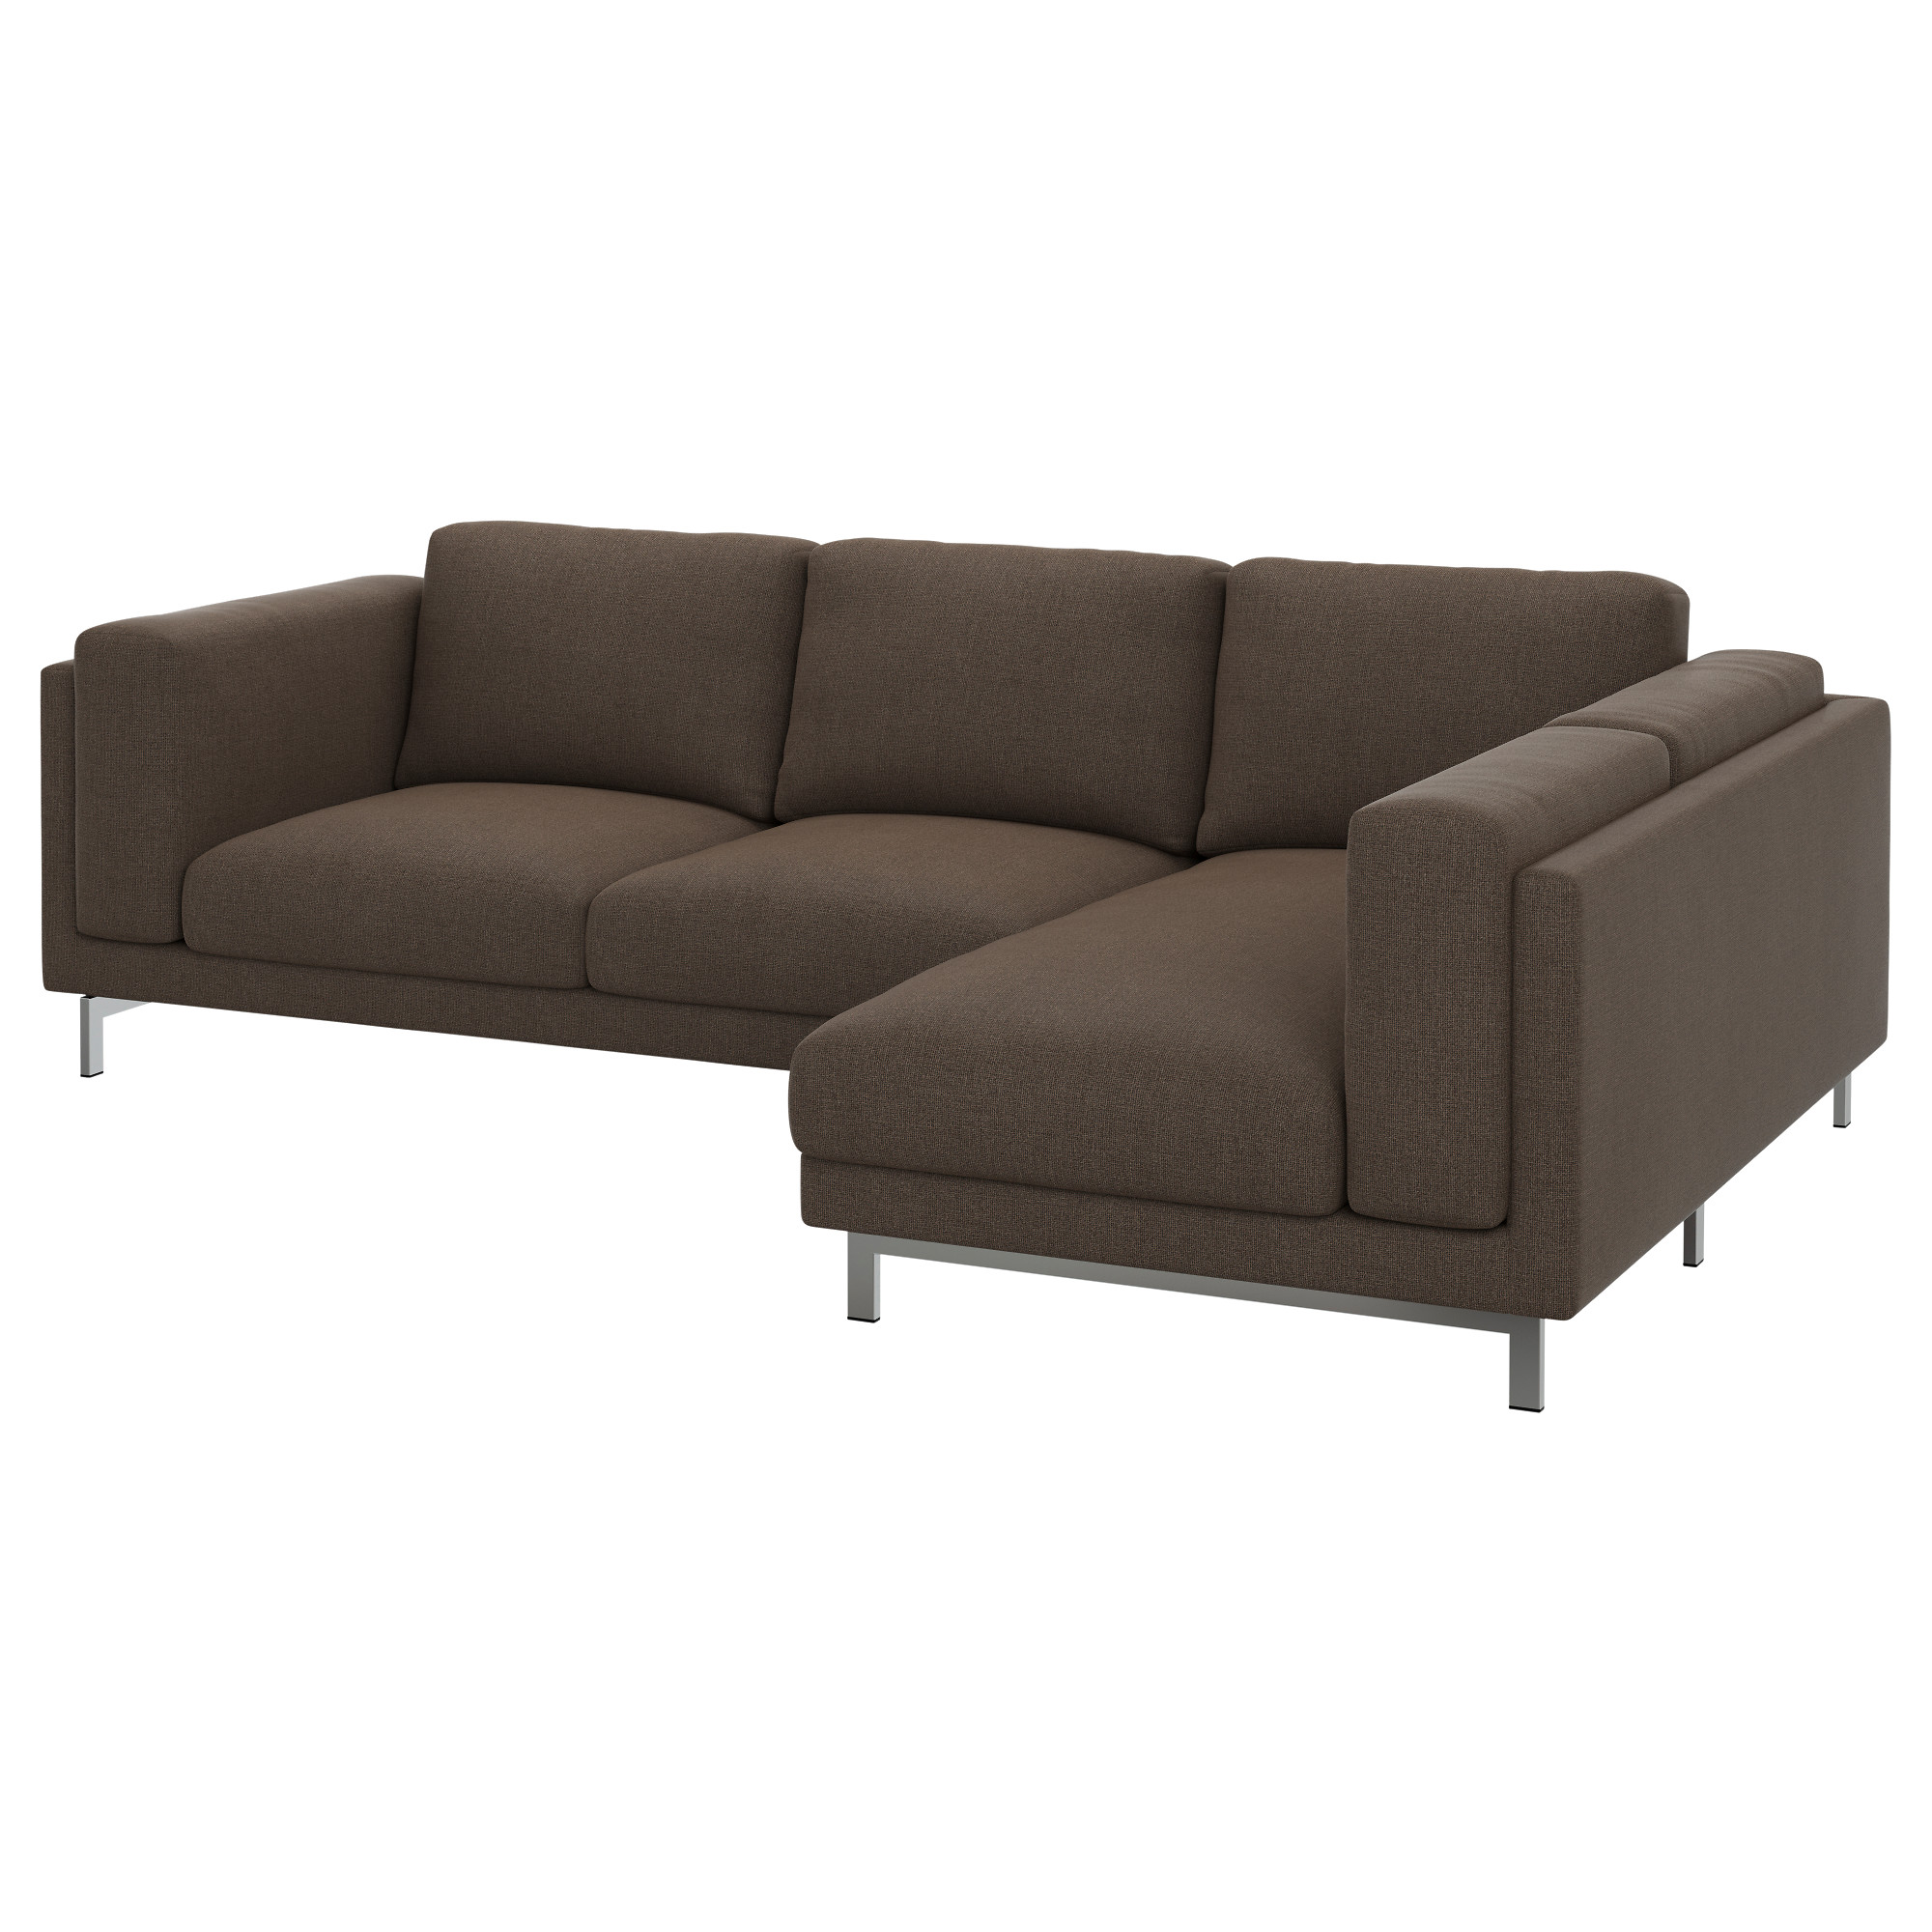 NOCKEBY Cover for 3 seat sectional right Tenö brown IKEA